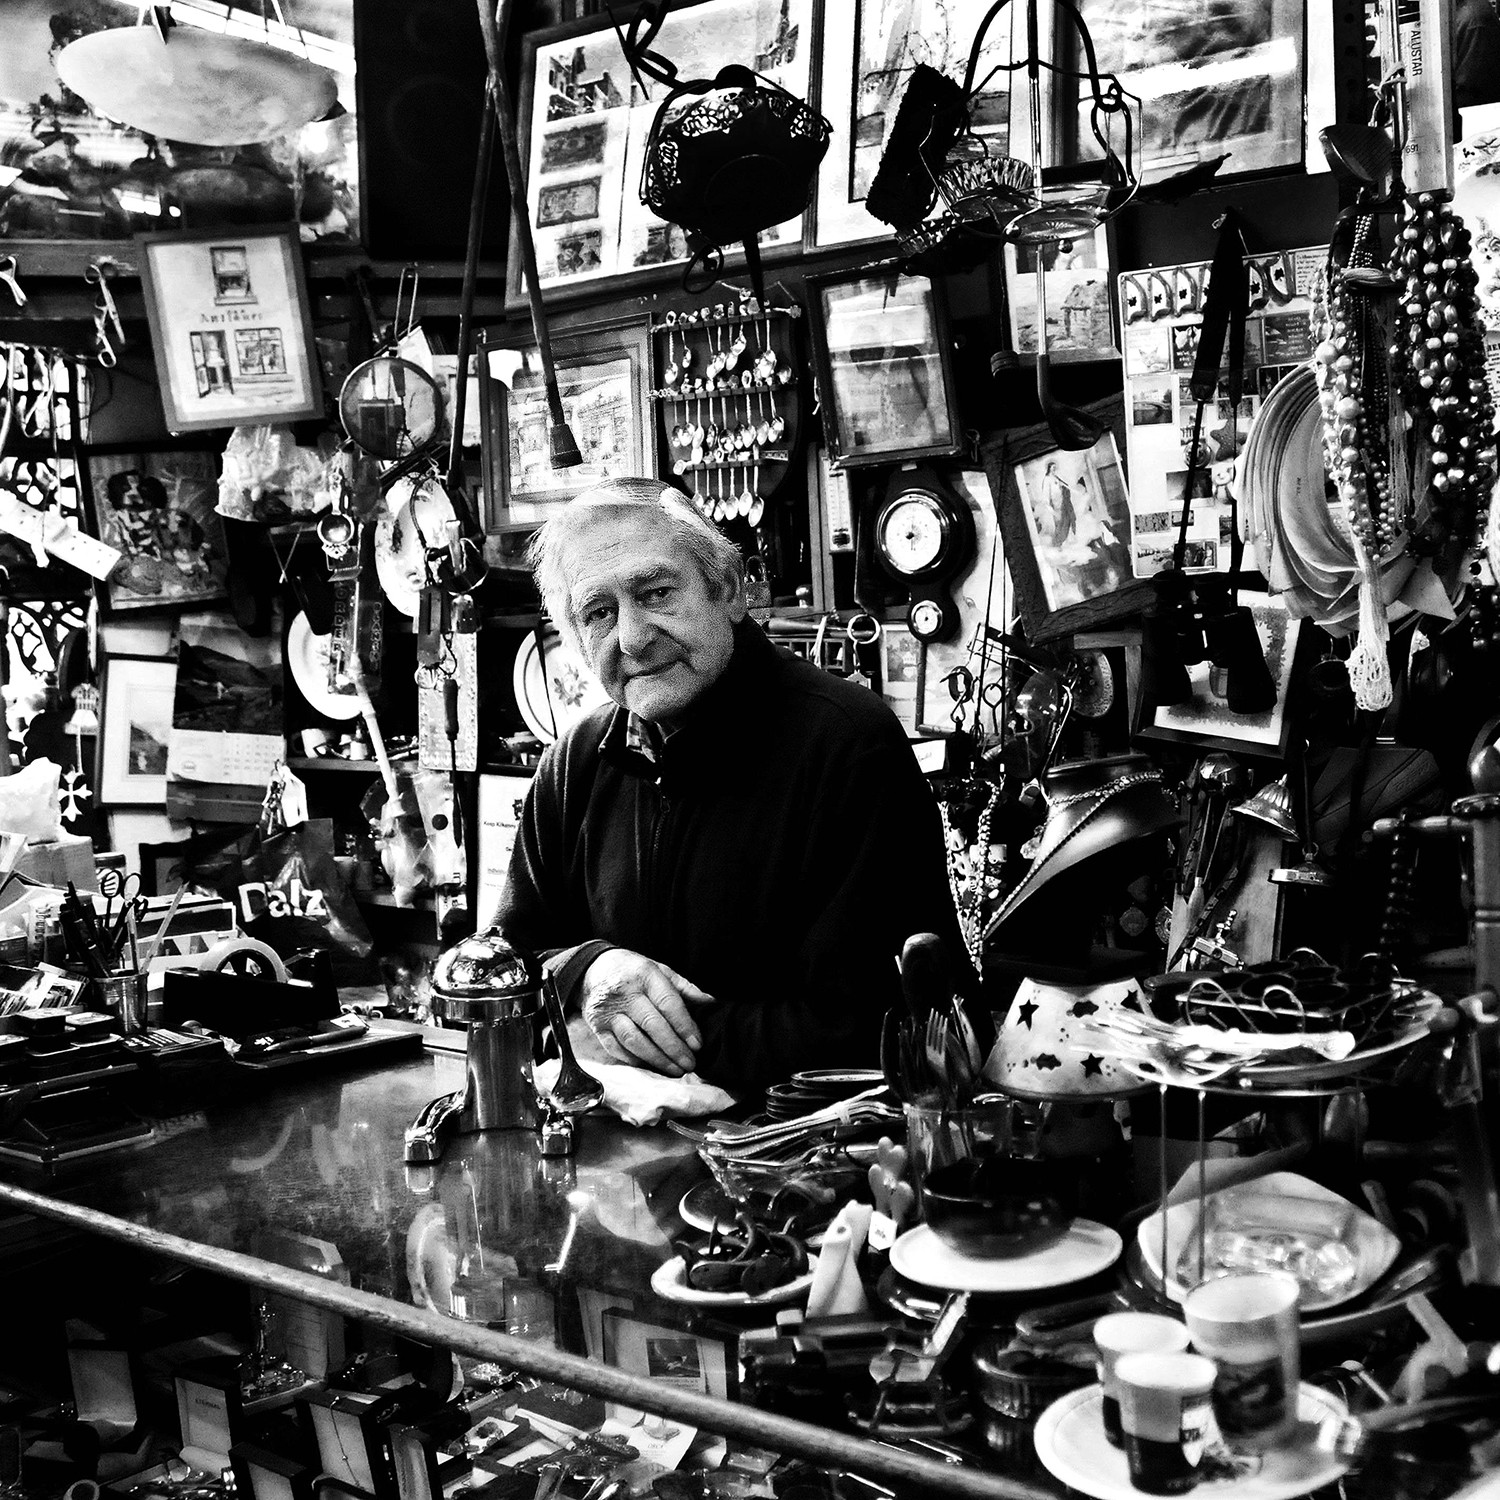 MONO - The Old Curiosity Shop by David Robertson (6 marks)